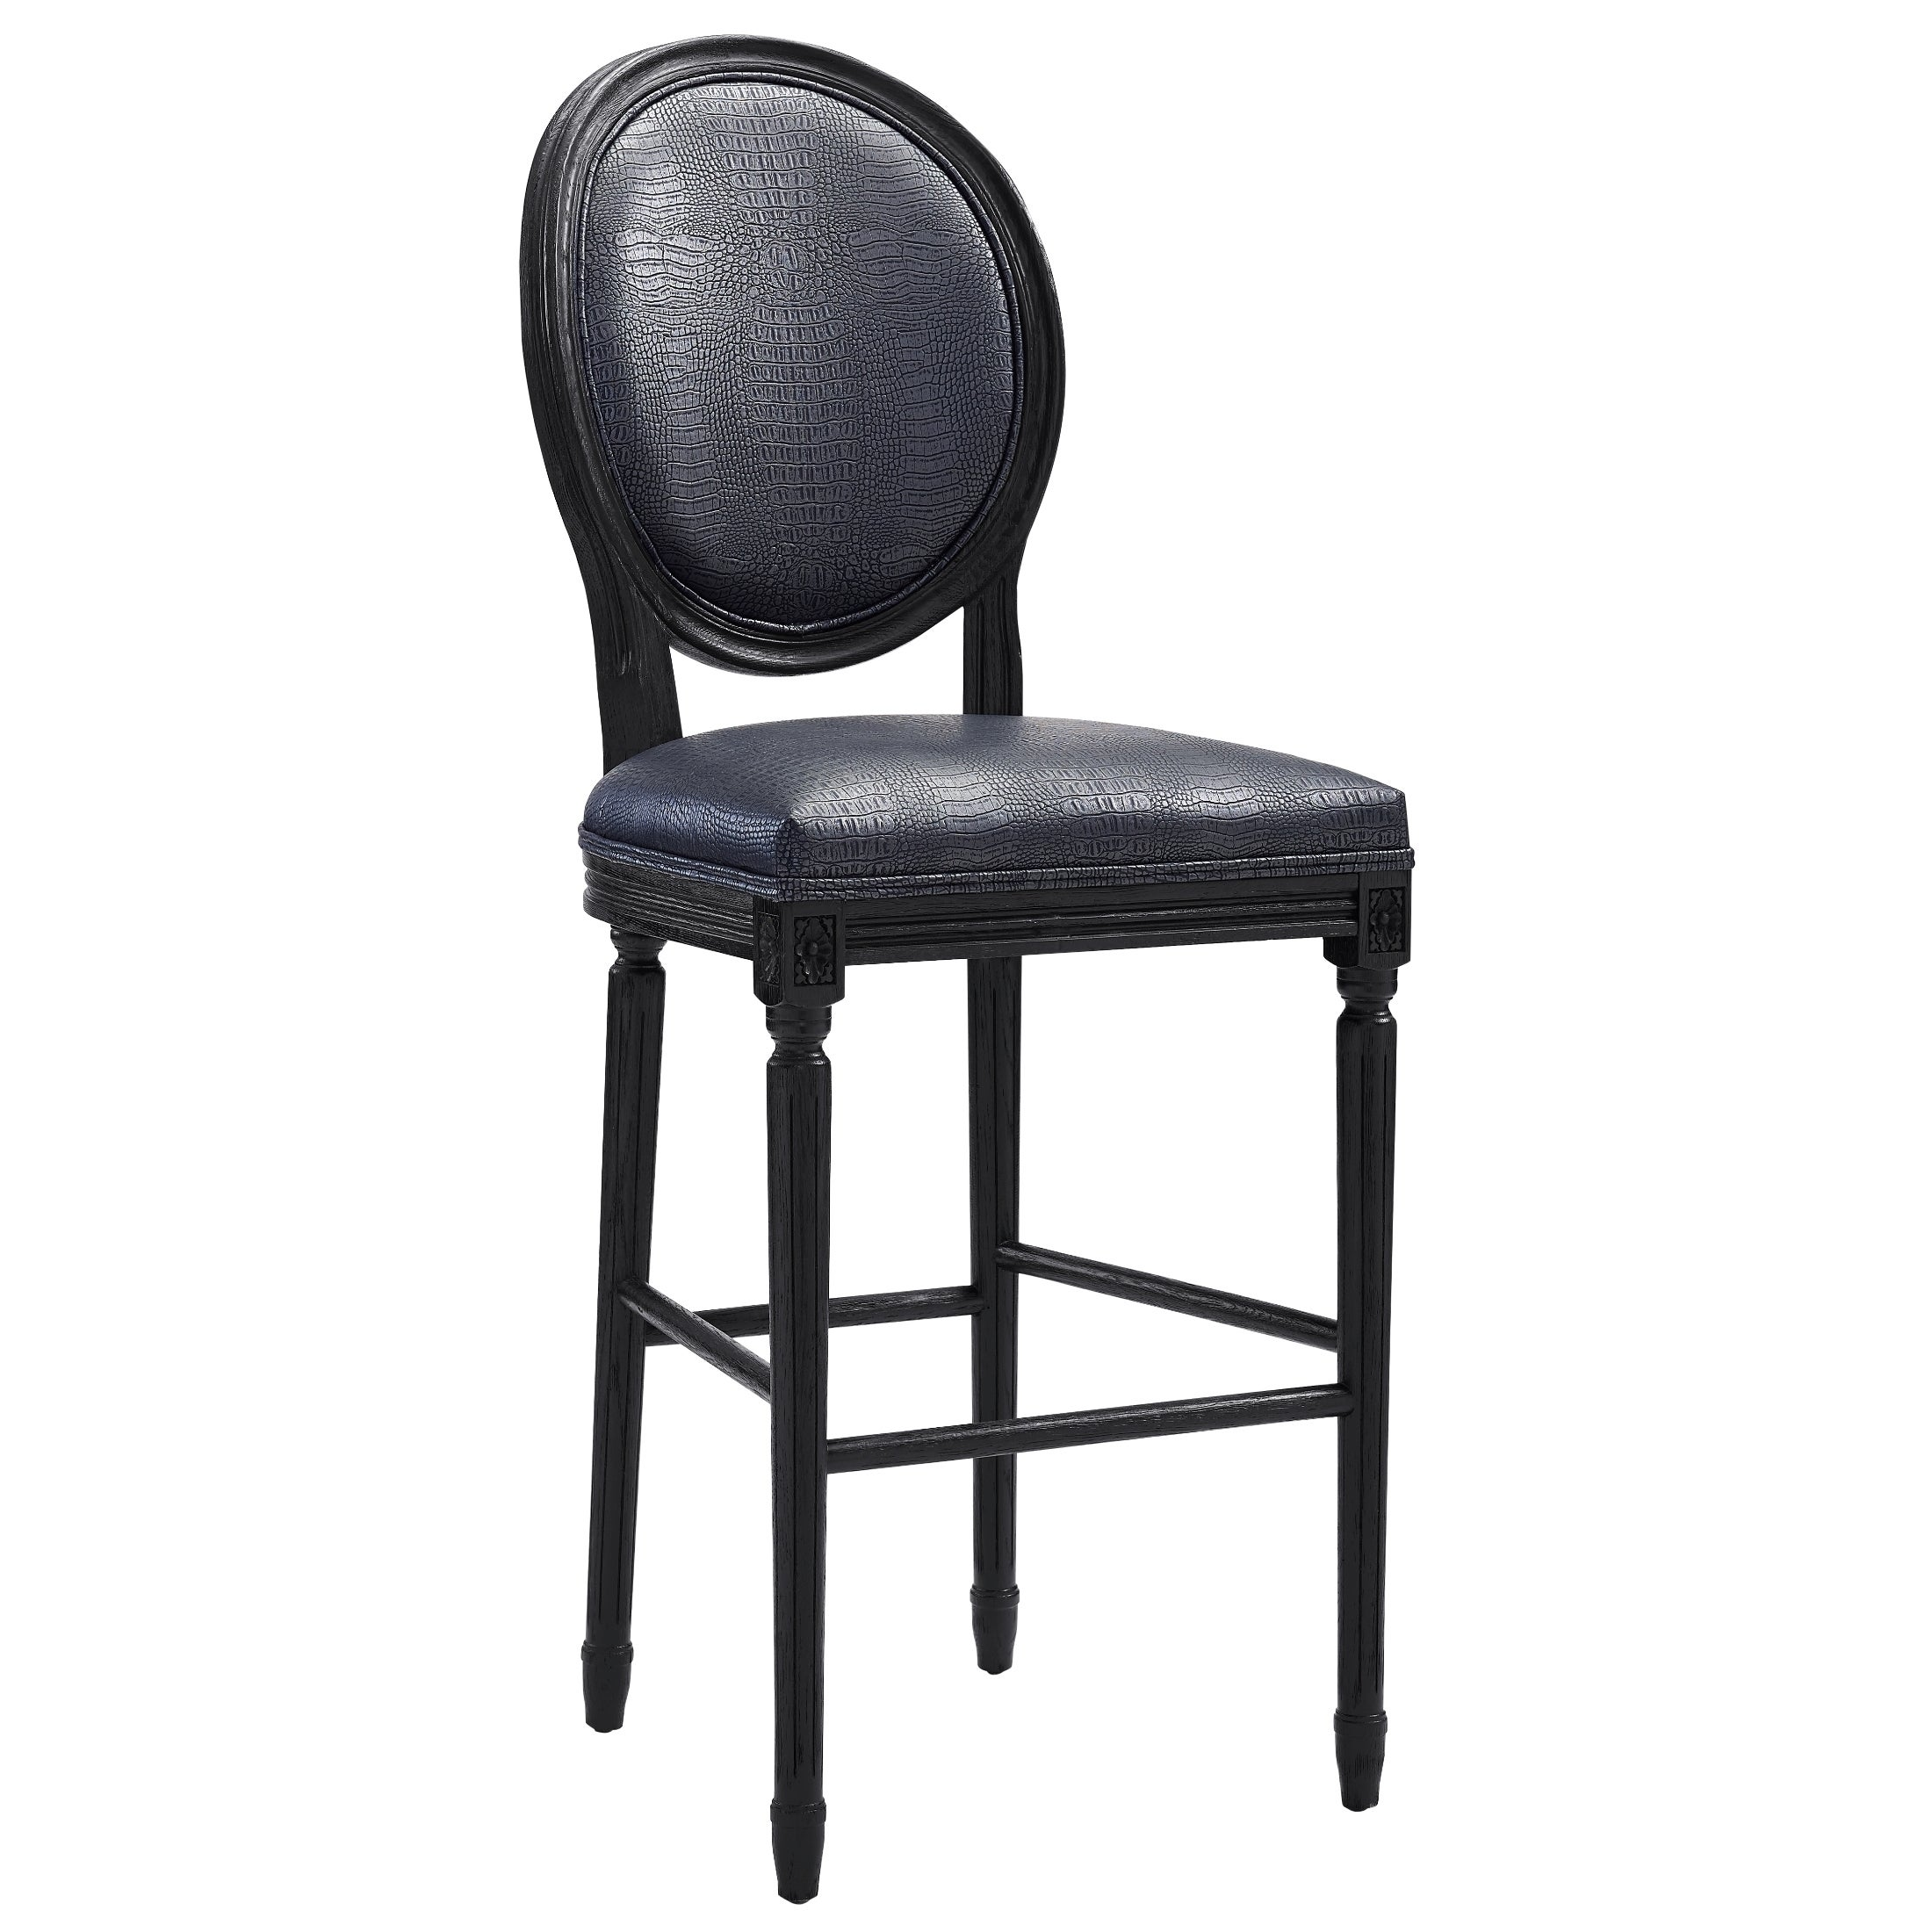 Philip Grey Croc Barstool   Free Shipping Today   Overstock.com   17444108